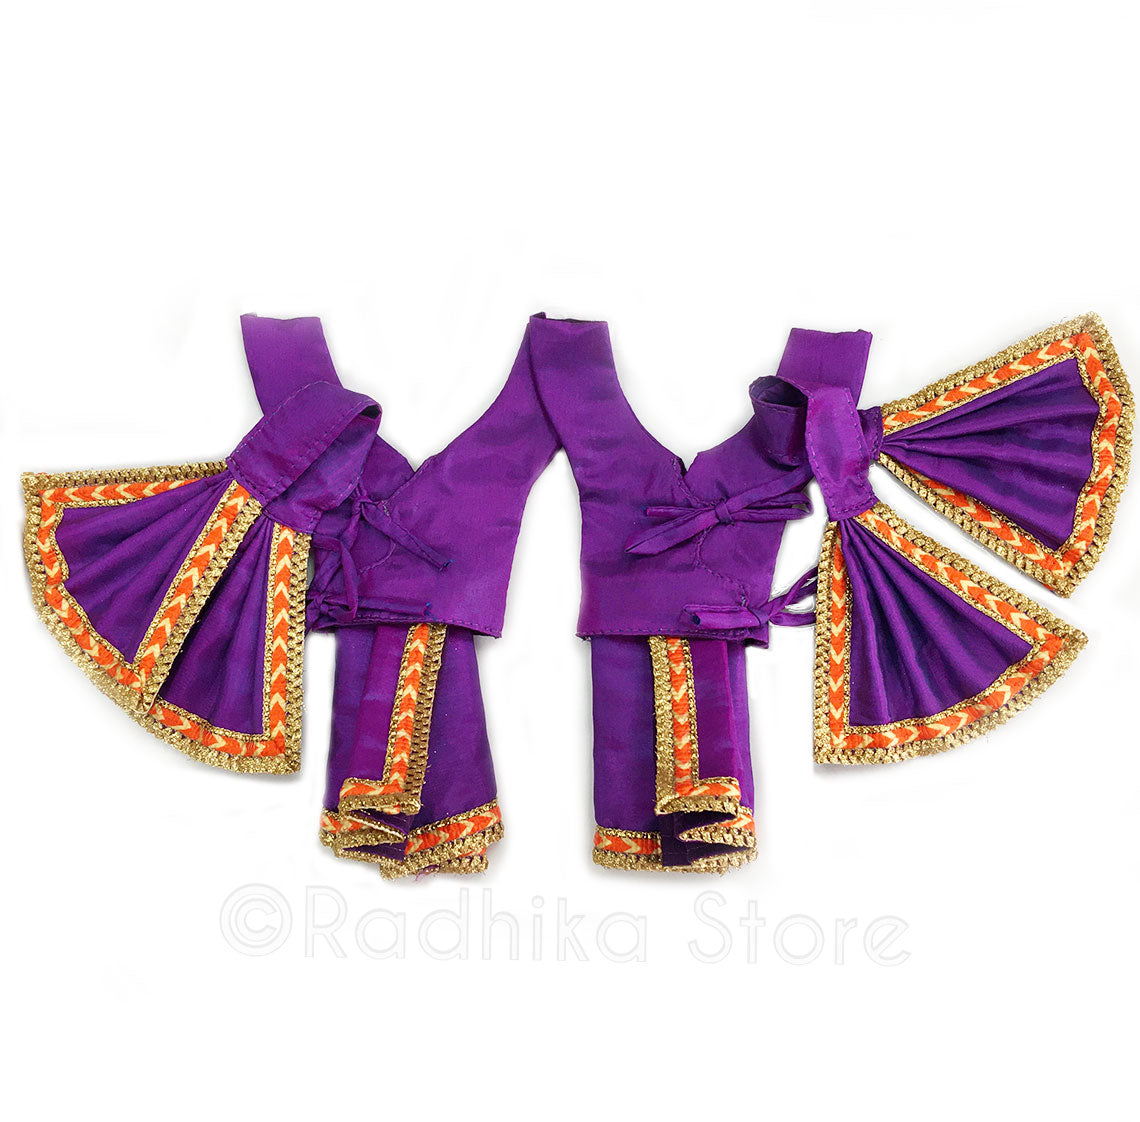 Mayapur Majesty Purple and Orange Deity Outfit - (Gaura Nitai) -Choose Size